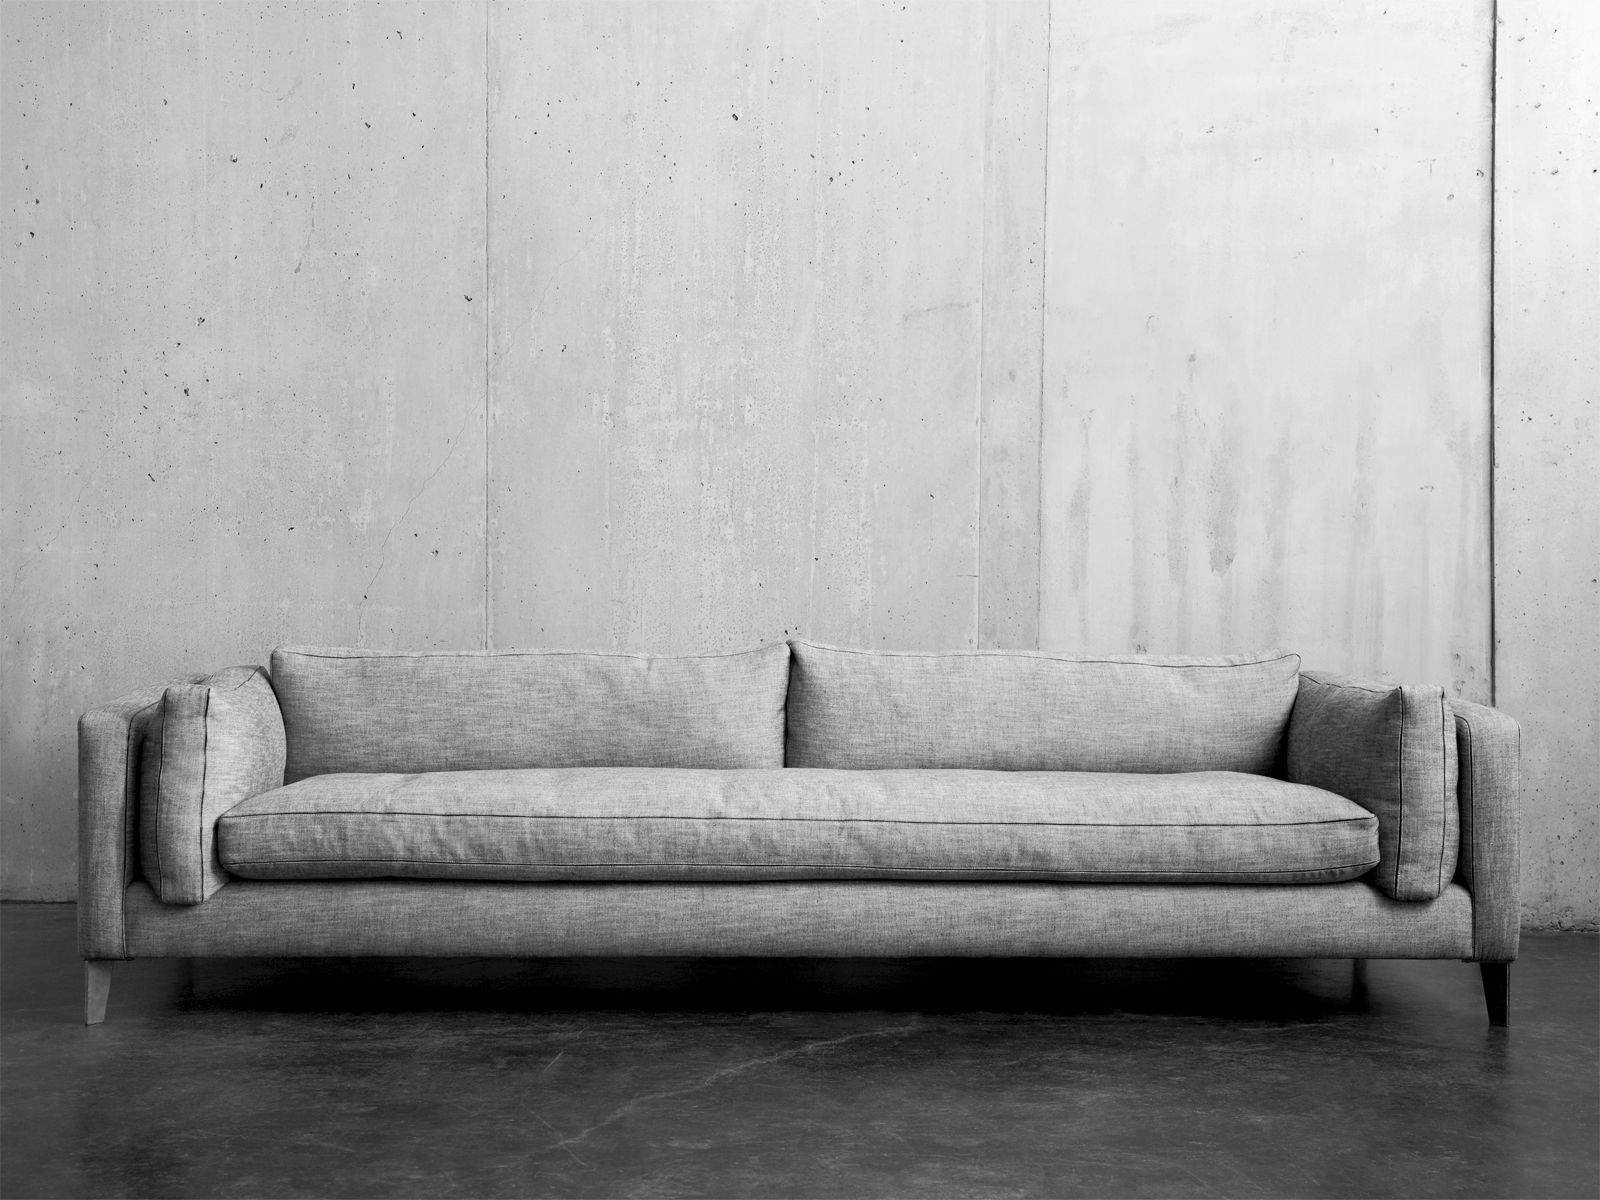 Superb Montauk Sofa, Harris Sofa. I Like That This Is Clean Yet Cozy Enough To